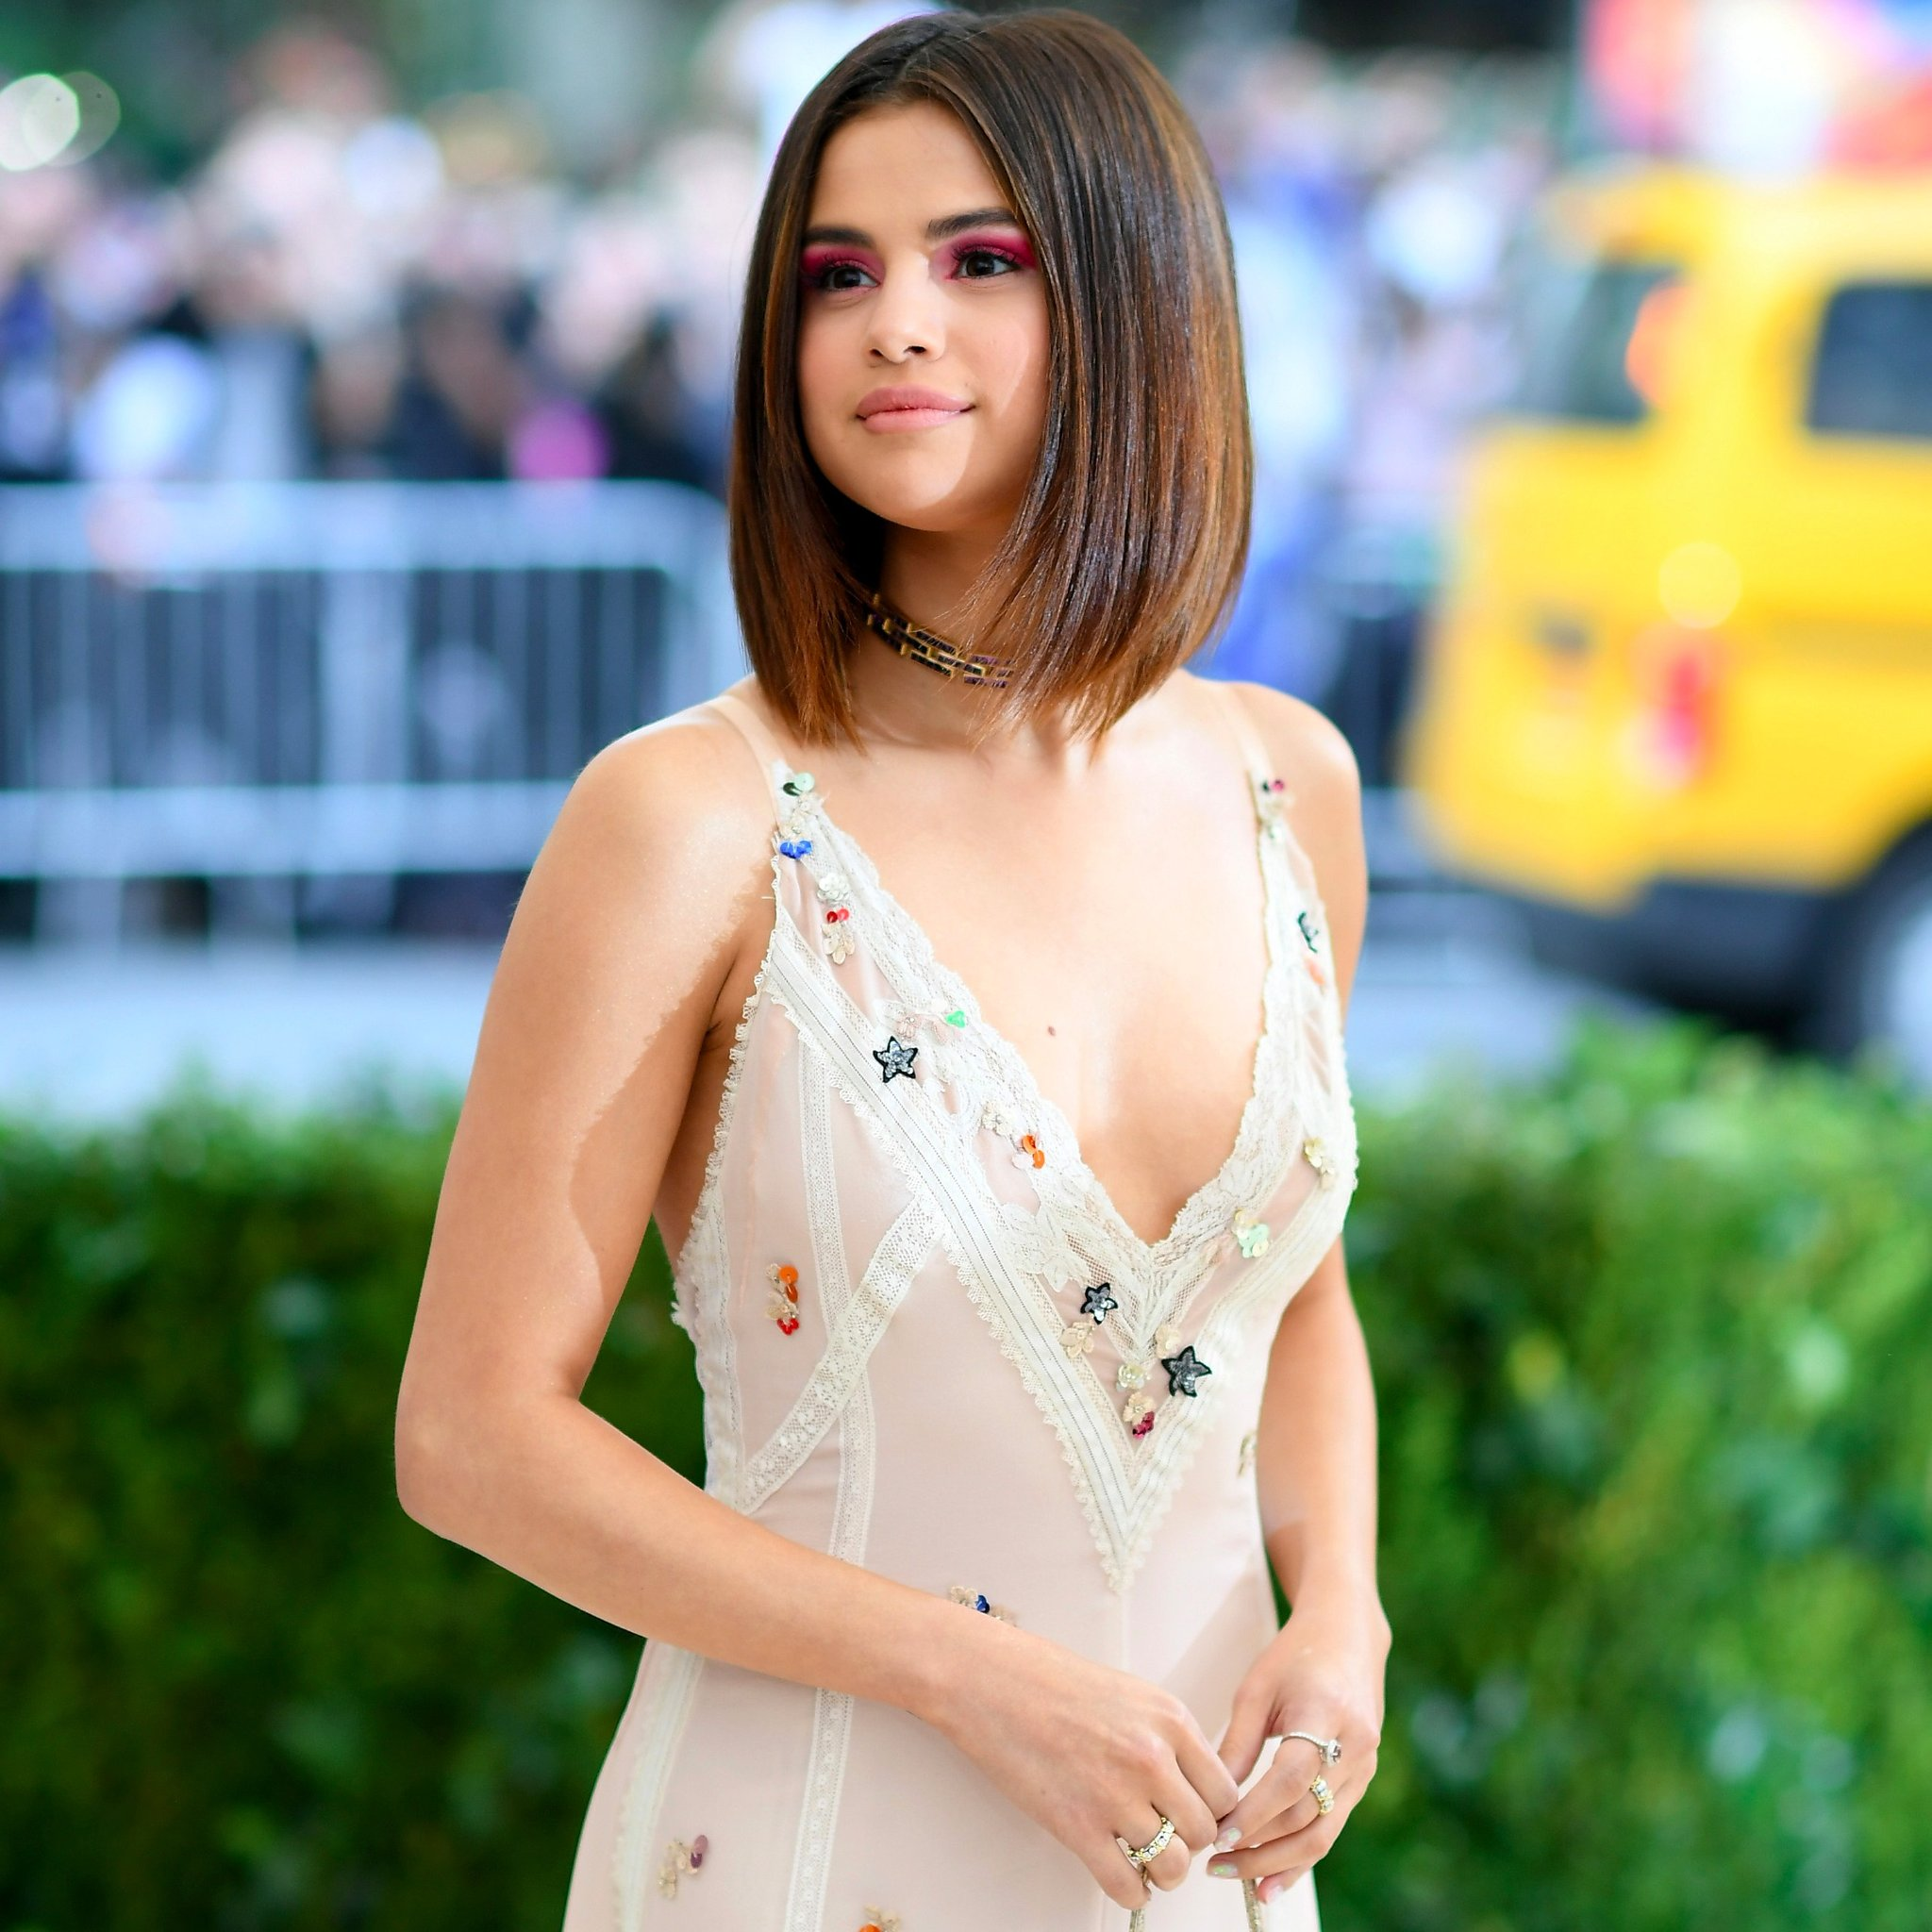 Selena Gomez Net Worth, Private Life, Movies, Songs ...